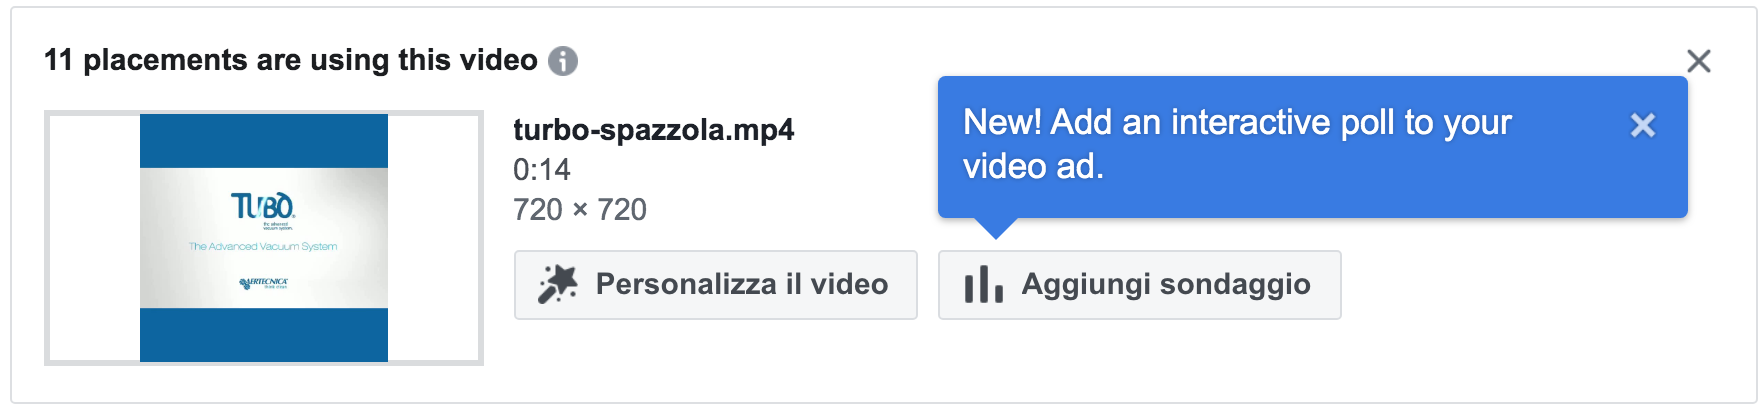 video poll ads facebook